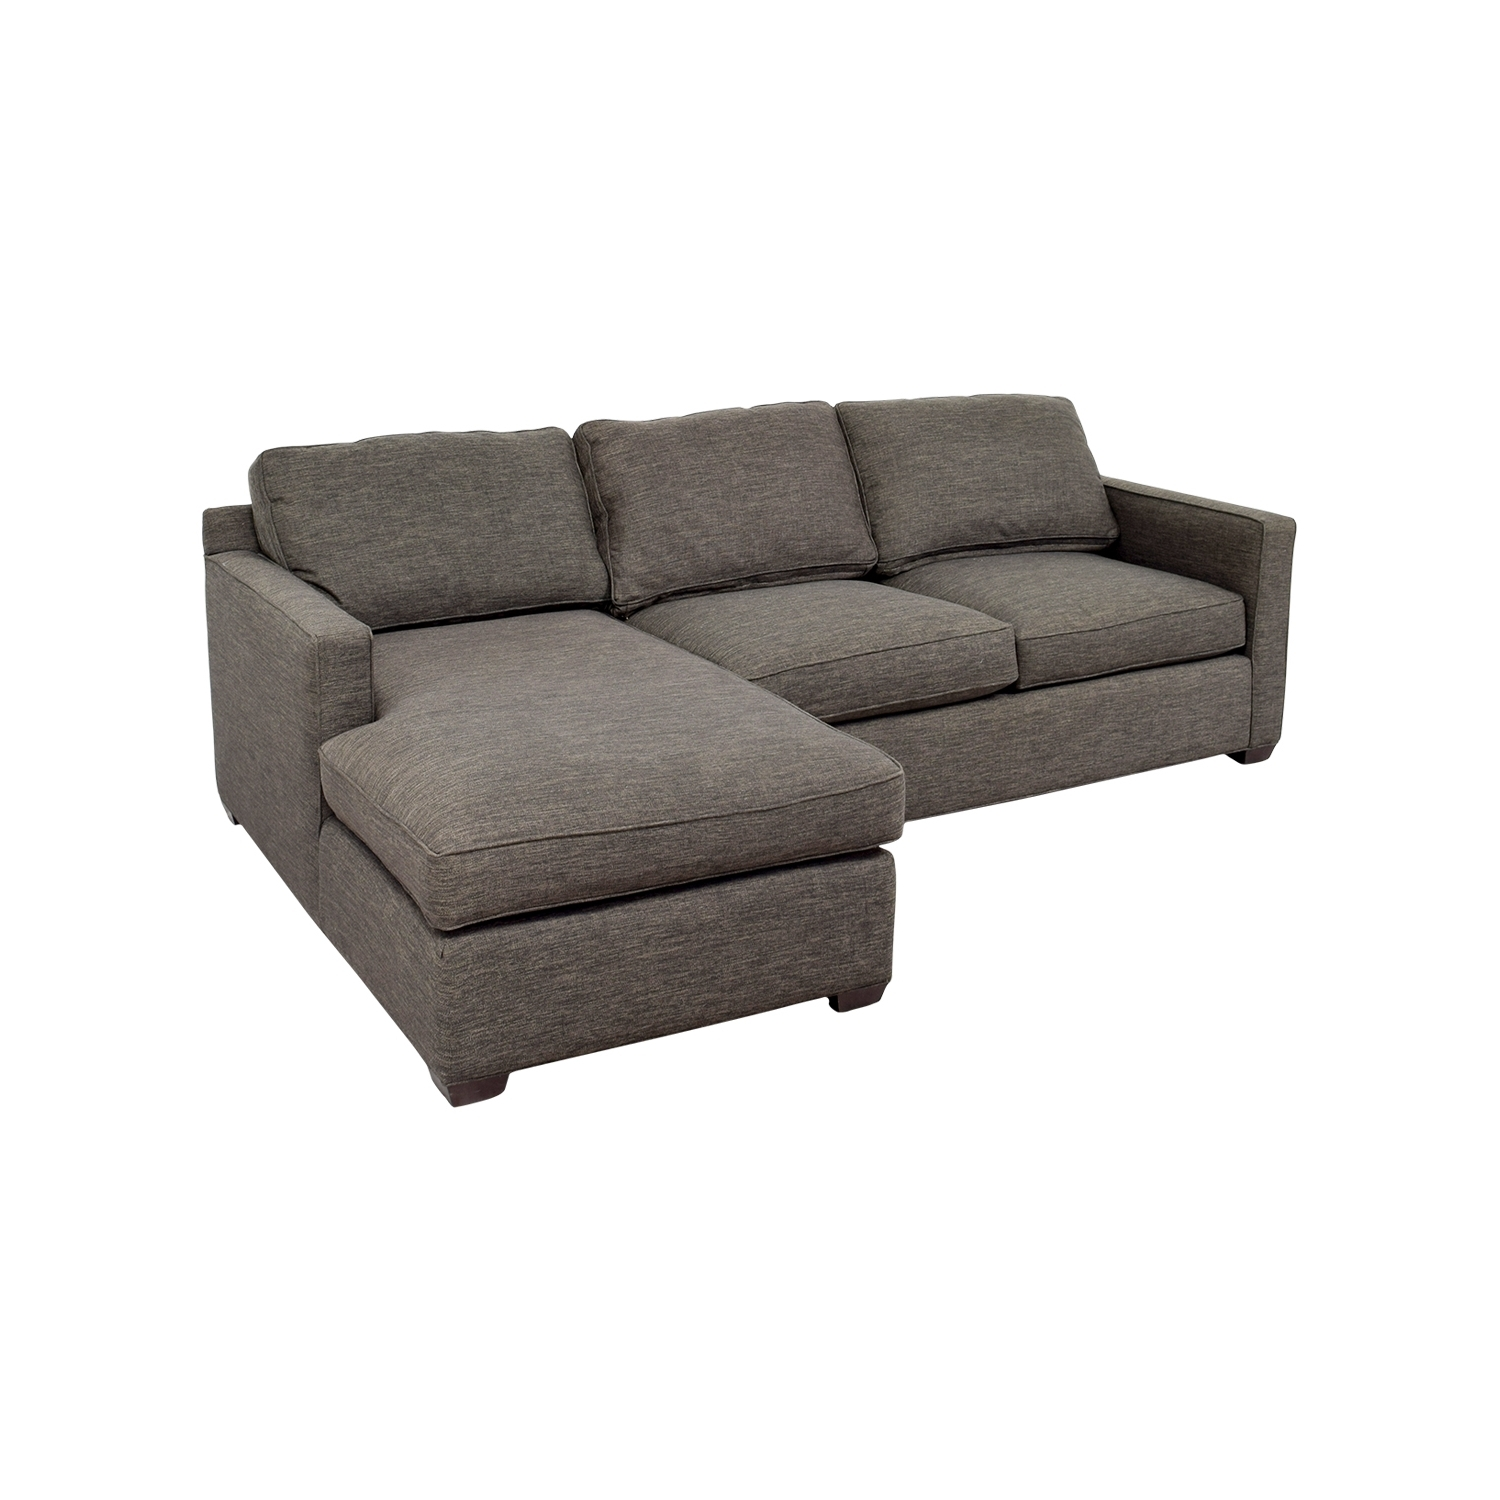 [%63% Off – Crate And Barrel Crate & Barrel Davis Grey Chaise Regarding Famous Grey Chaise Sectionals|grey Chaise Sectionals With Regard To Preferred 63% Off – Crate And Barrel Crate & Barrel Davis Grey Chaise|newest Grey Chaise Sectionals Regarding 63% Off – Crate And Barrel Crate & Barrel Davis Grey Chaise|best And Newest 63% Off – Crate And Barrel Crate & Barrel Davis Grey Chaise Inside Grey Chaise Sectionals%] (View 8 of 15)